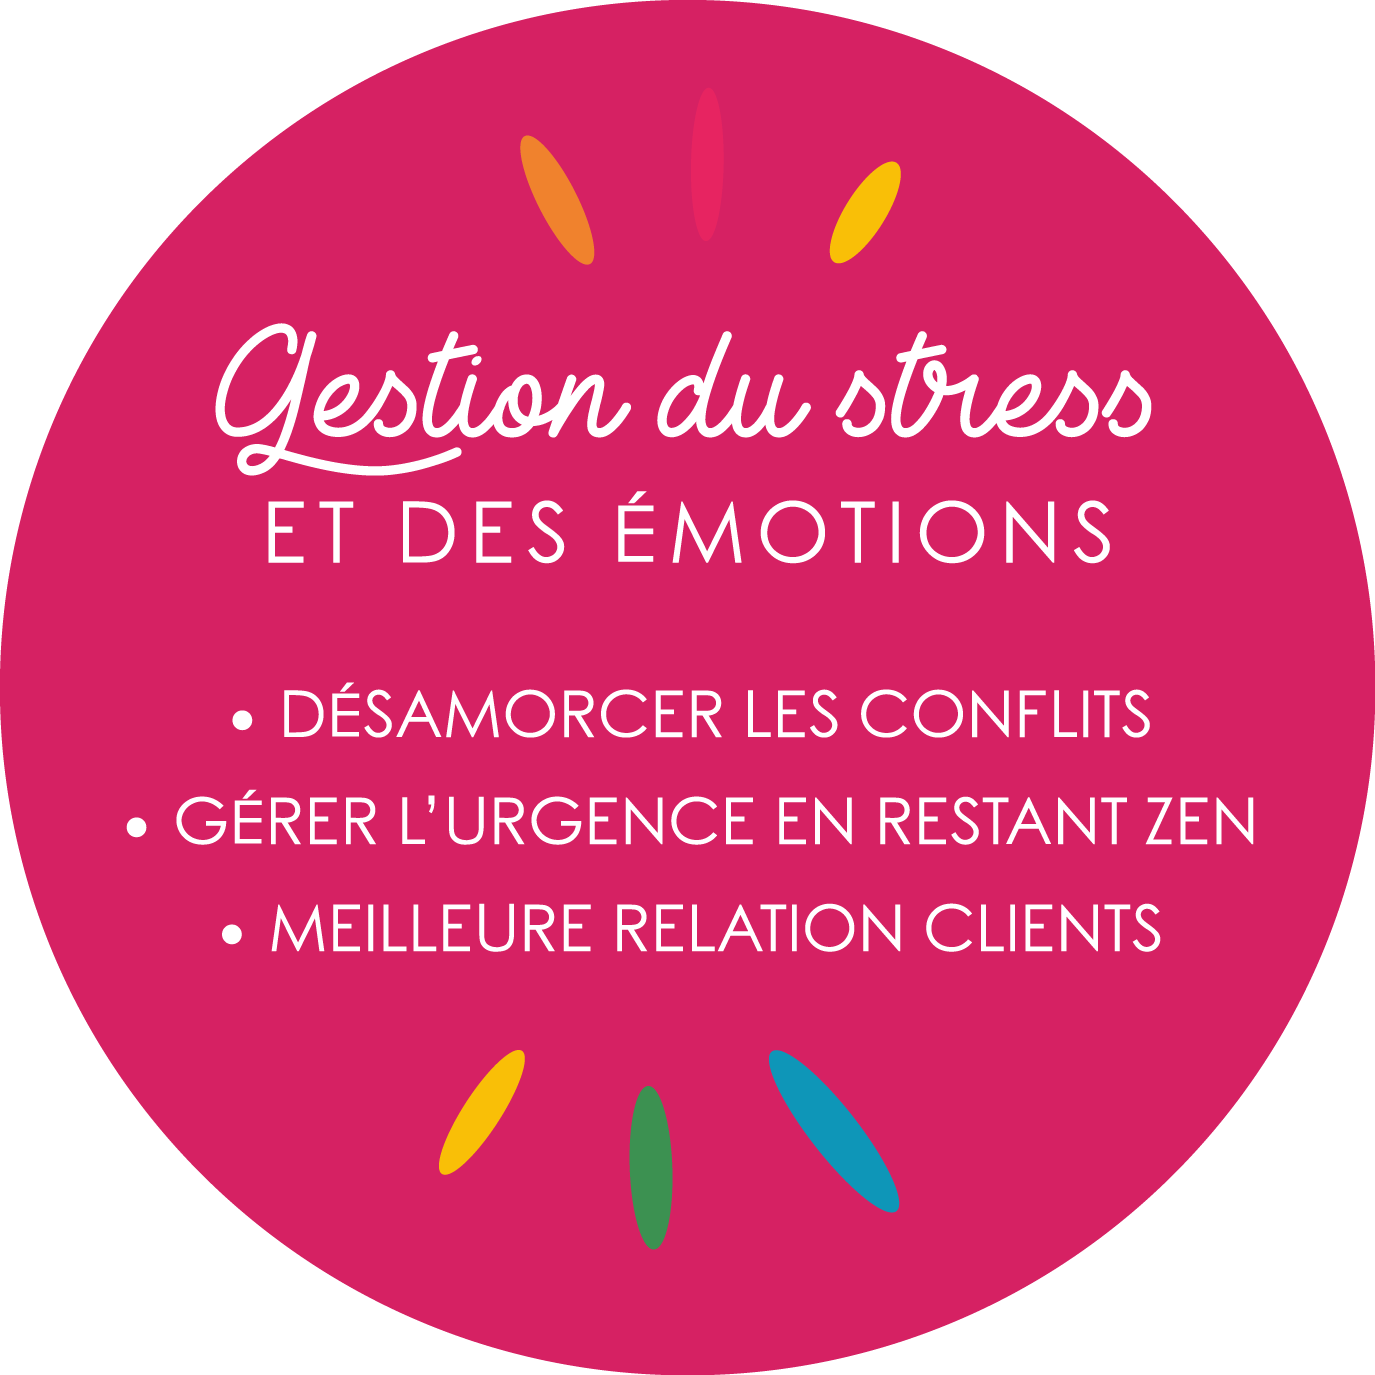 Gestion du stress par Alternatives Sophrologie, Angers.